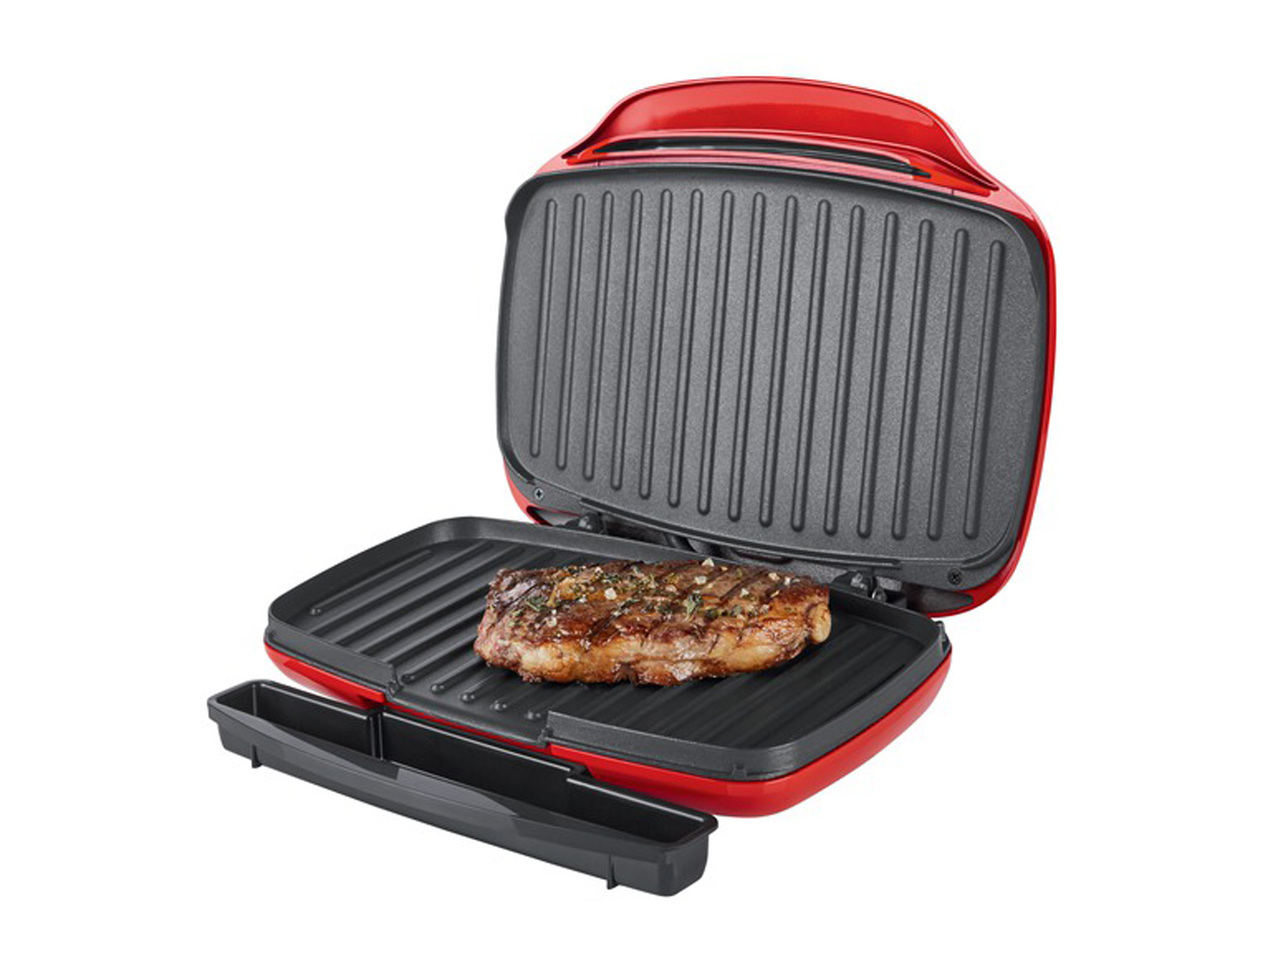 silvercrest kitchen tools 1000w contact grill - lidl — northern